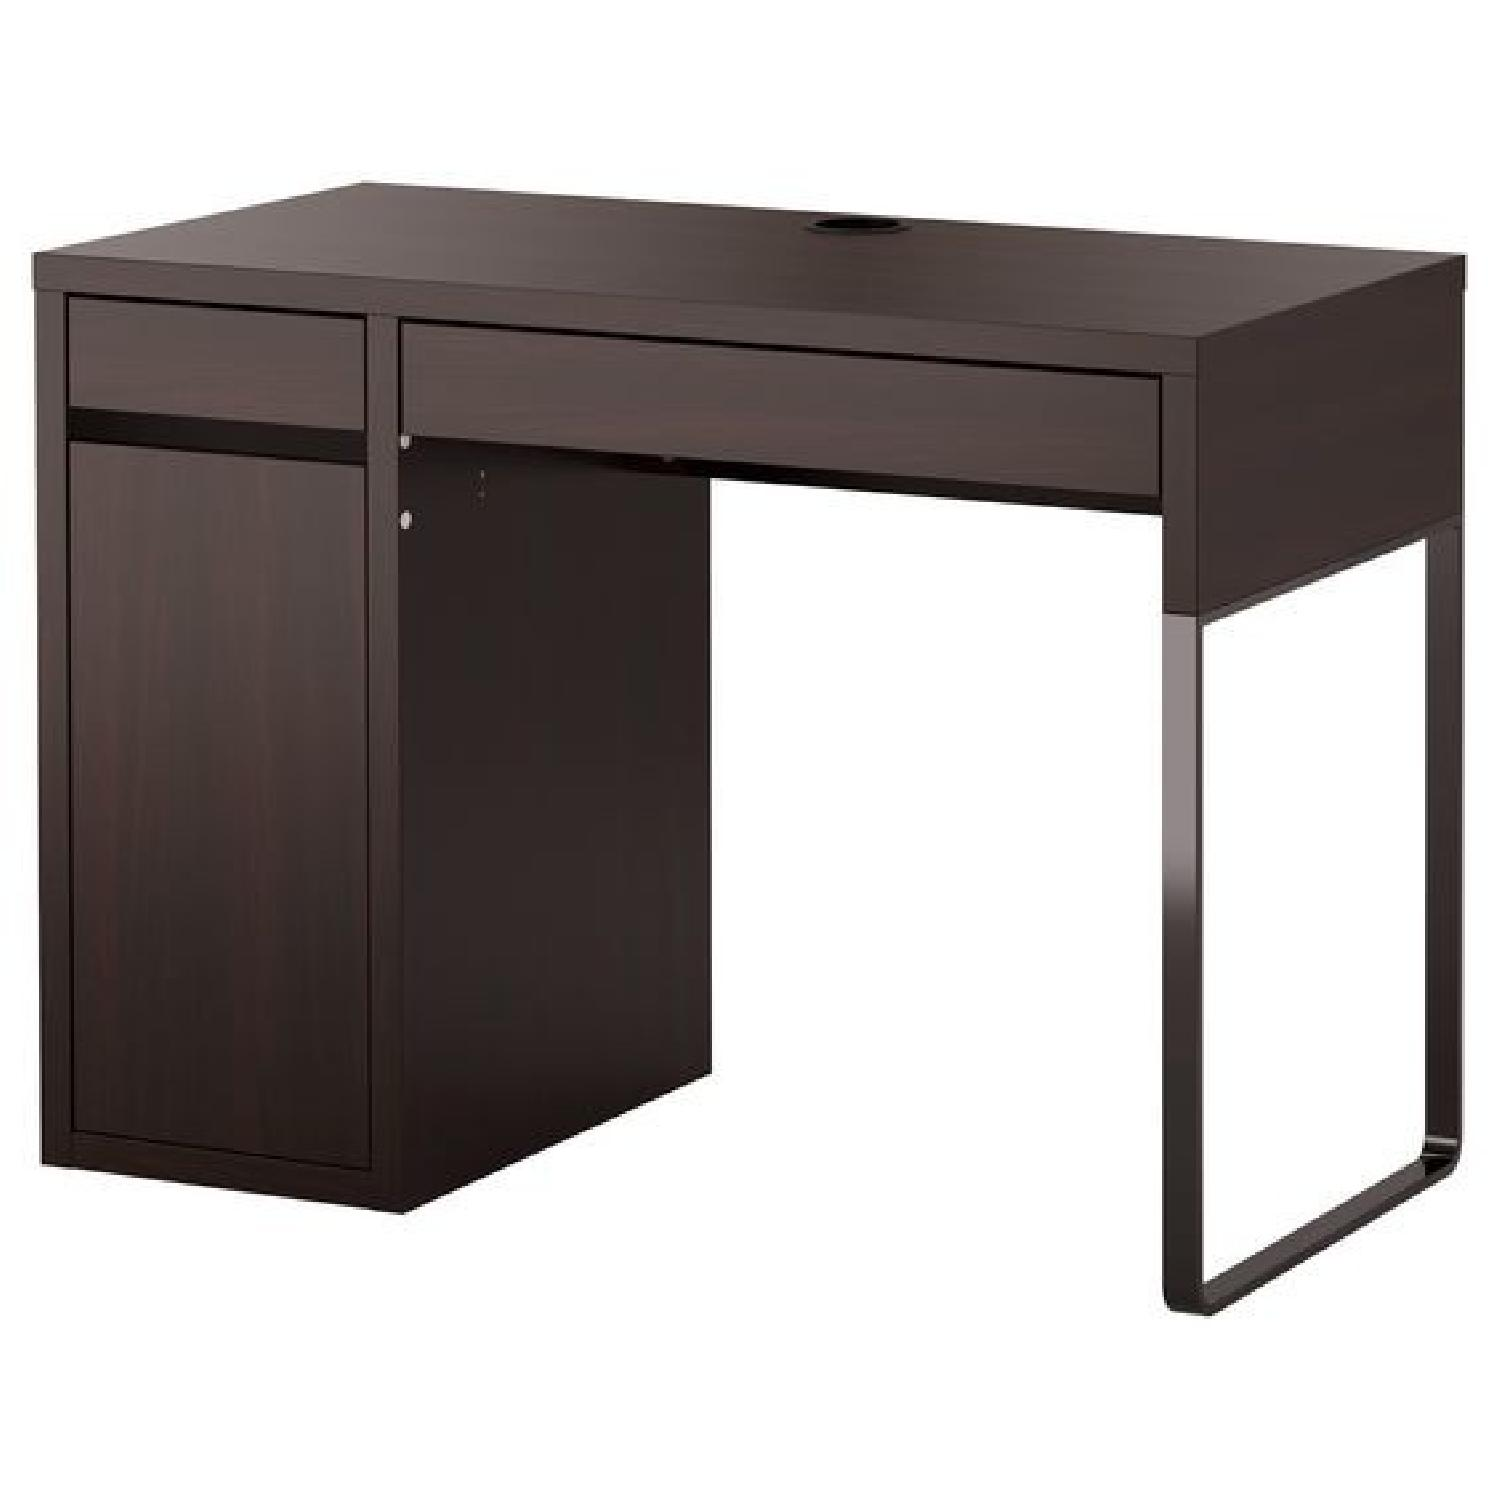 In Cabinet Drawers Ikea Micke Desk W 2 Drawers 1 Cabinet